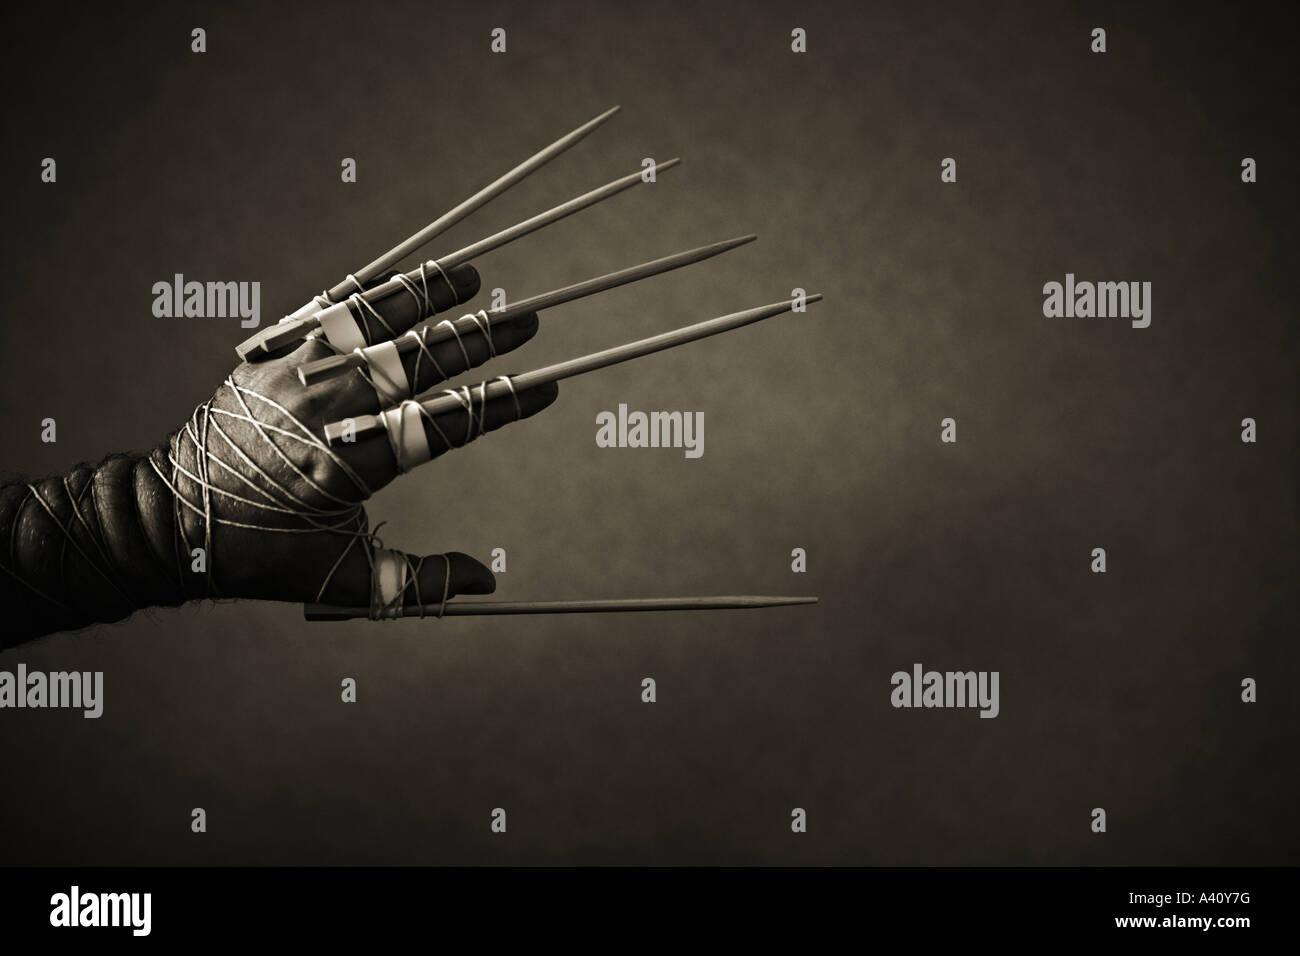 Man's hand with chop sticks tied to fingers - Stock Image